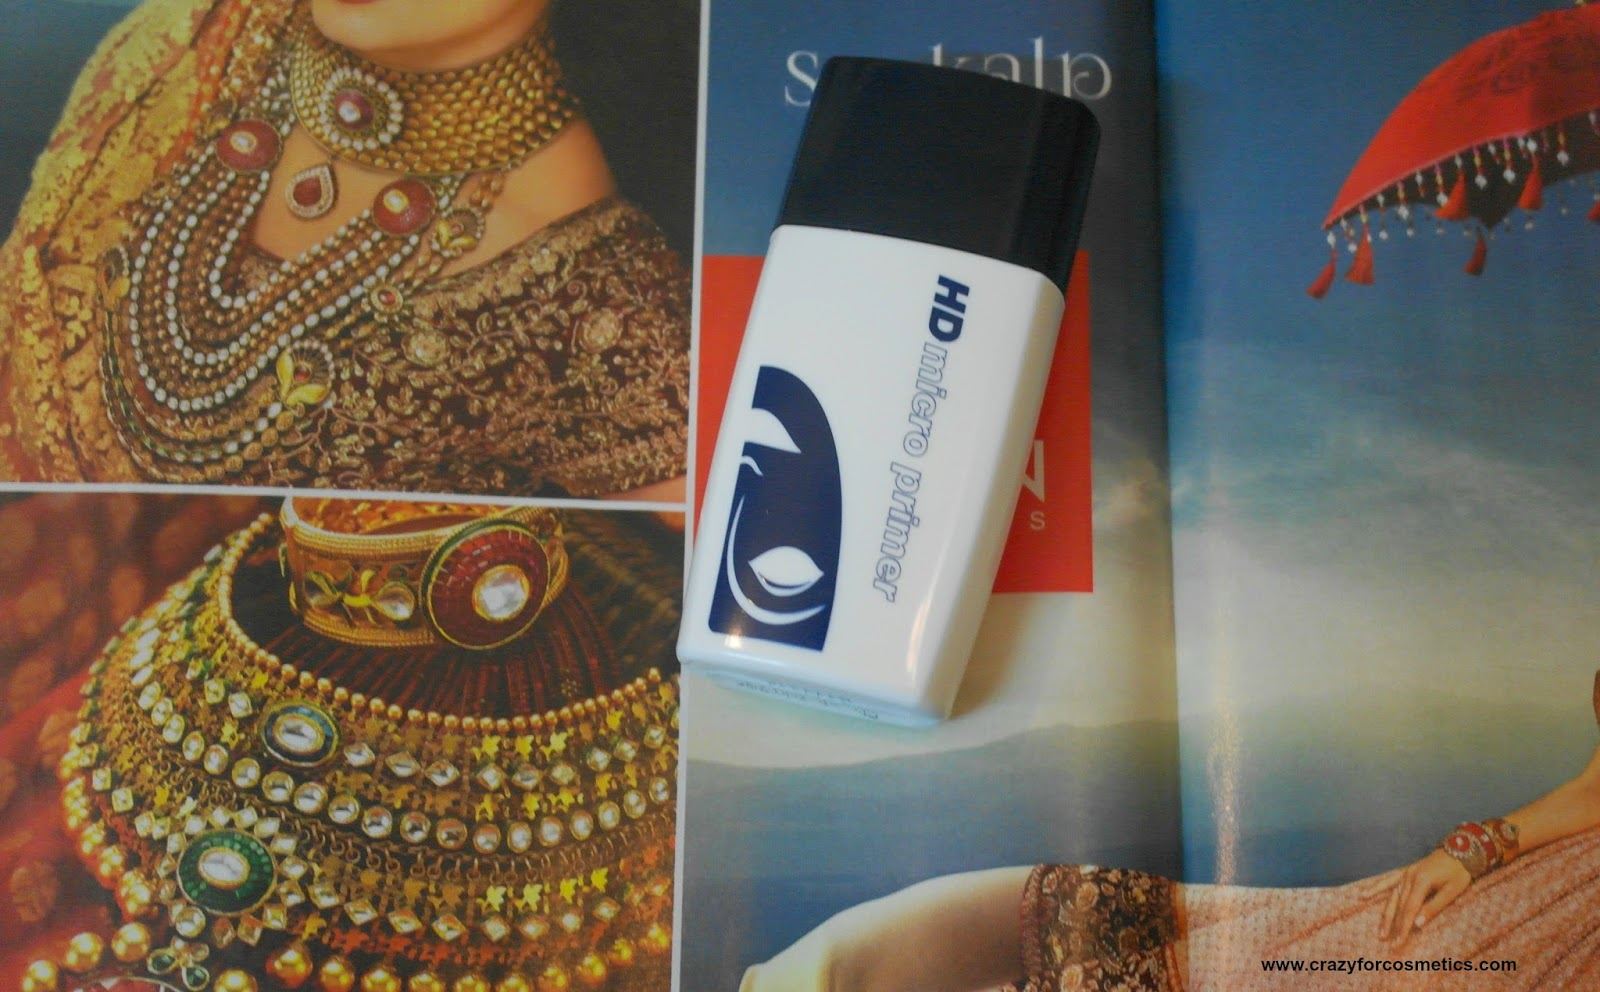 kryolan germany hd micro primer review in india